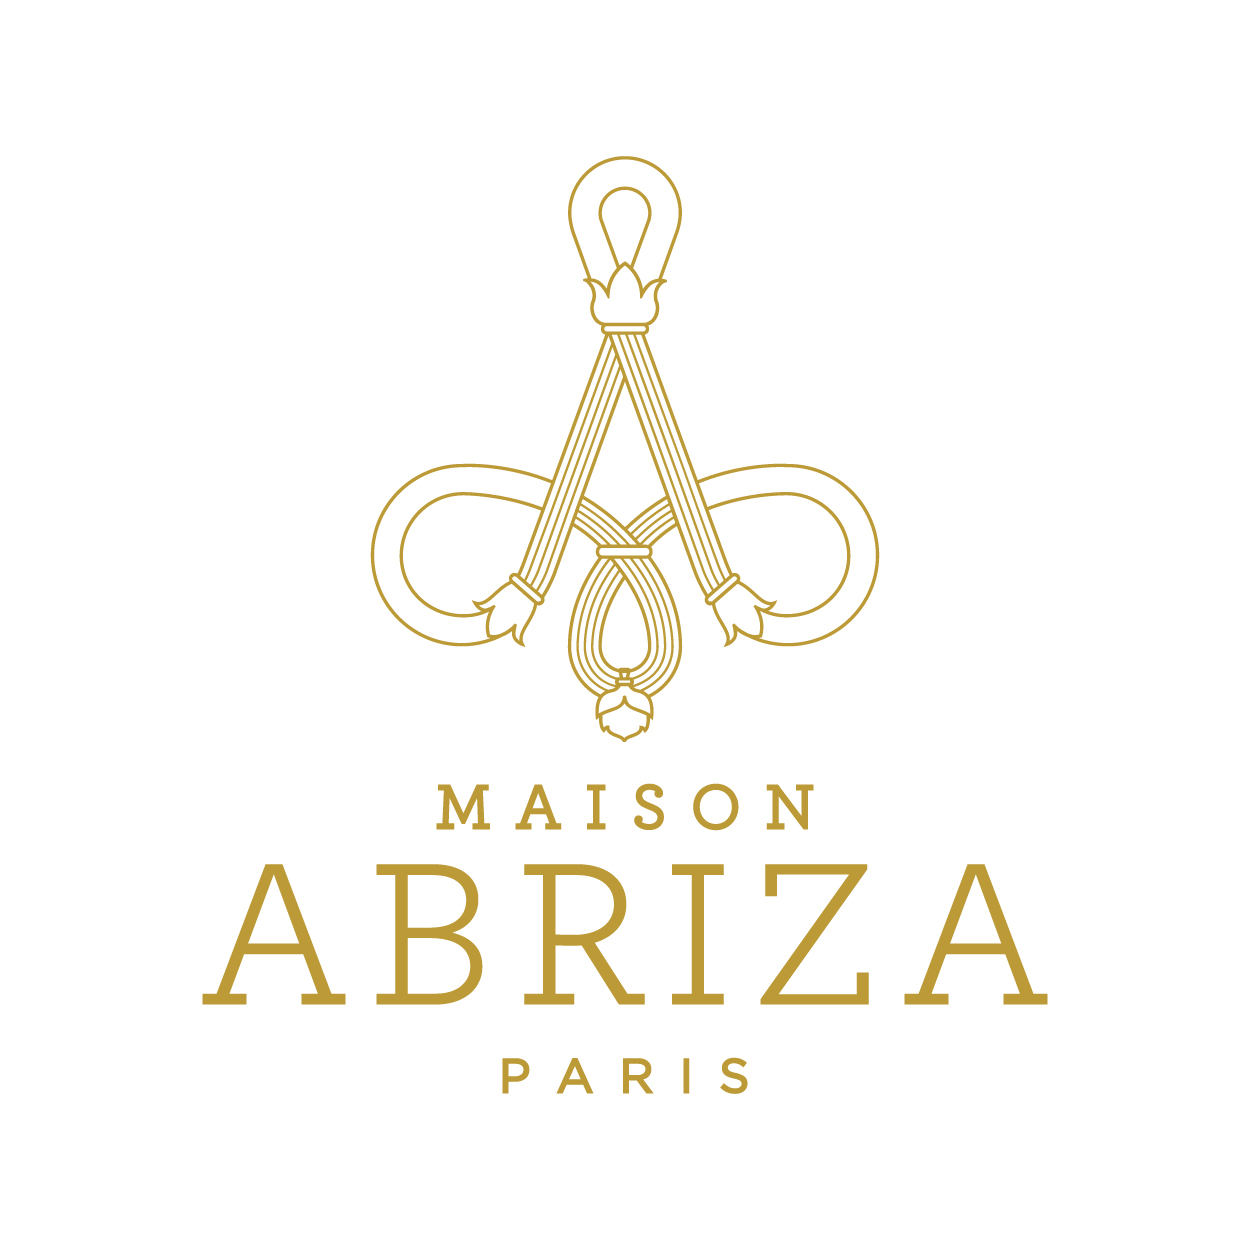 Création logo branding packaging art du parfuage MAISON ABRIZA PARIS